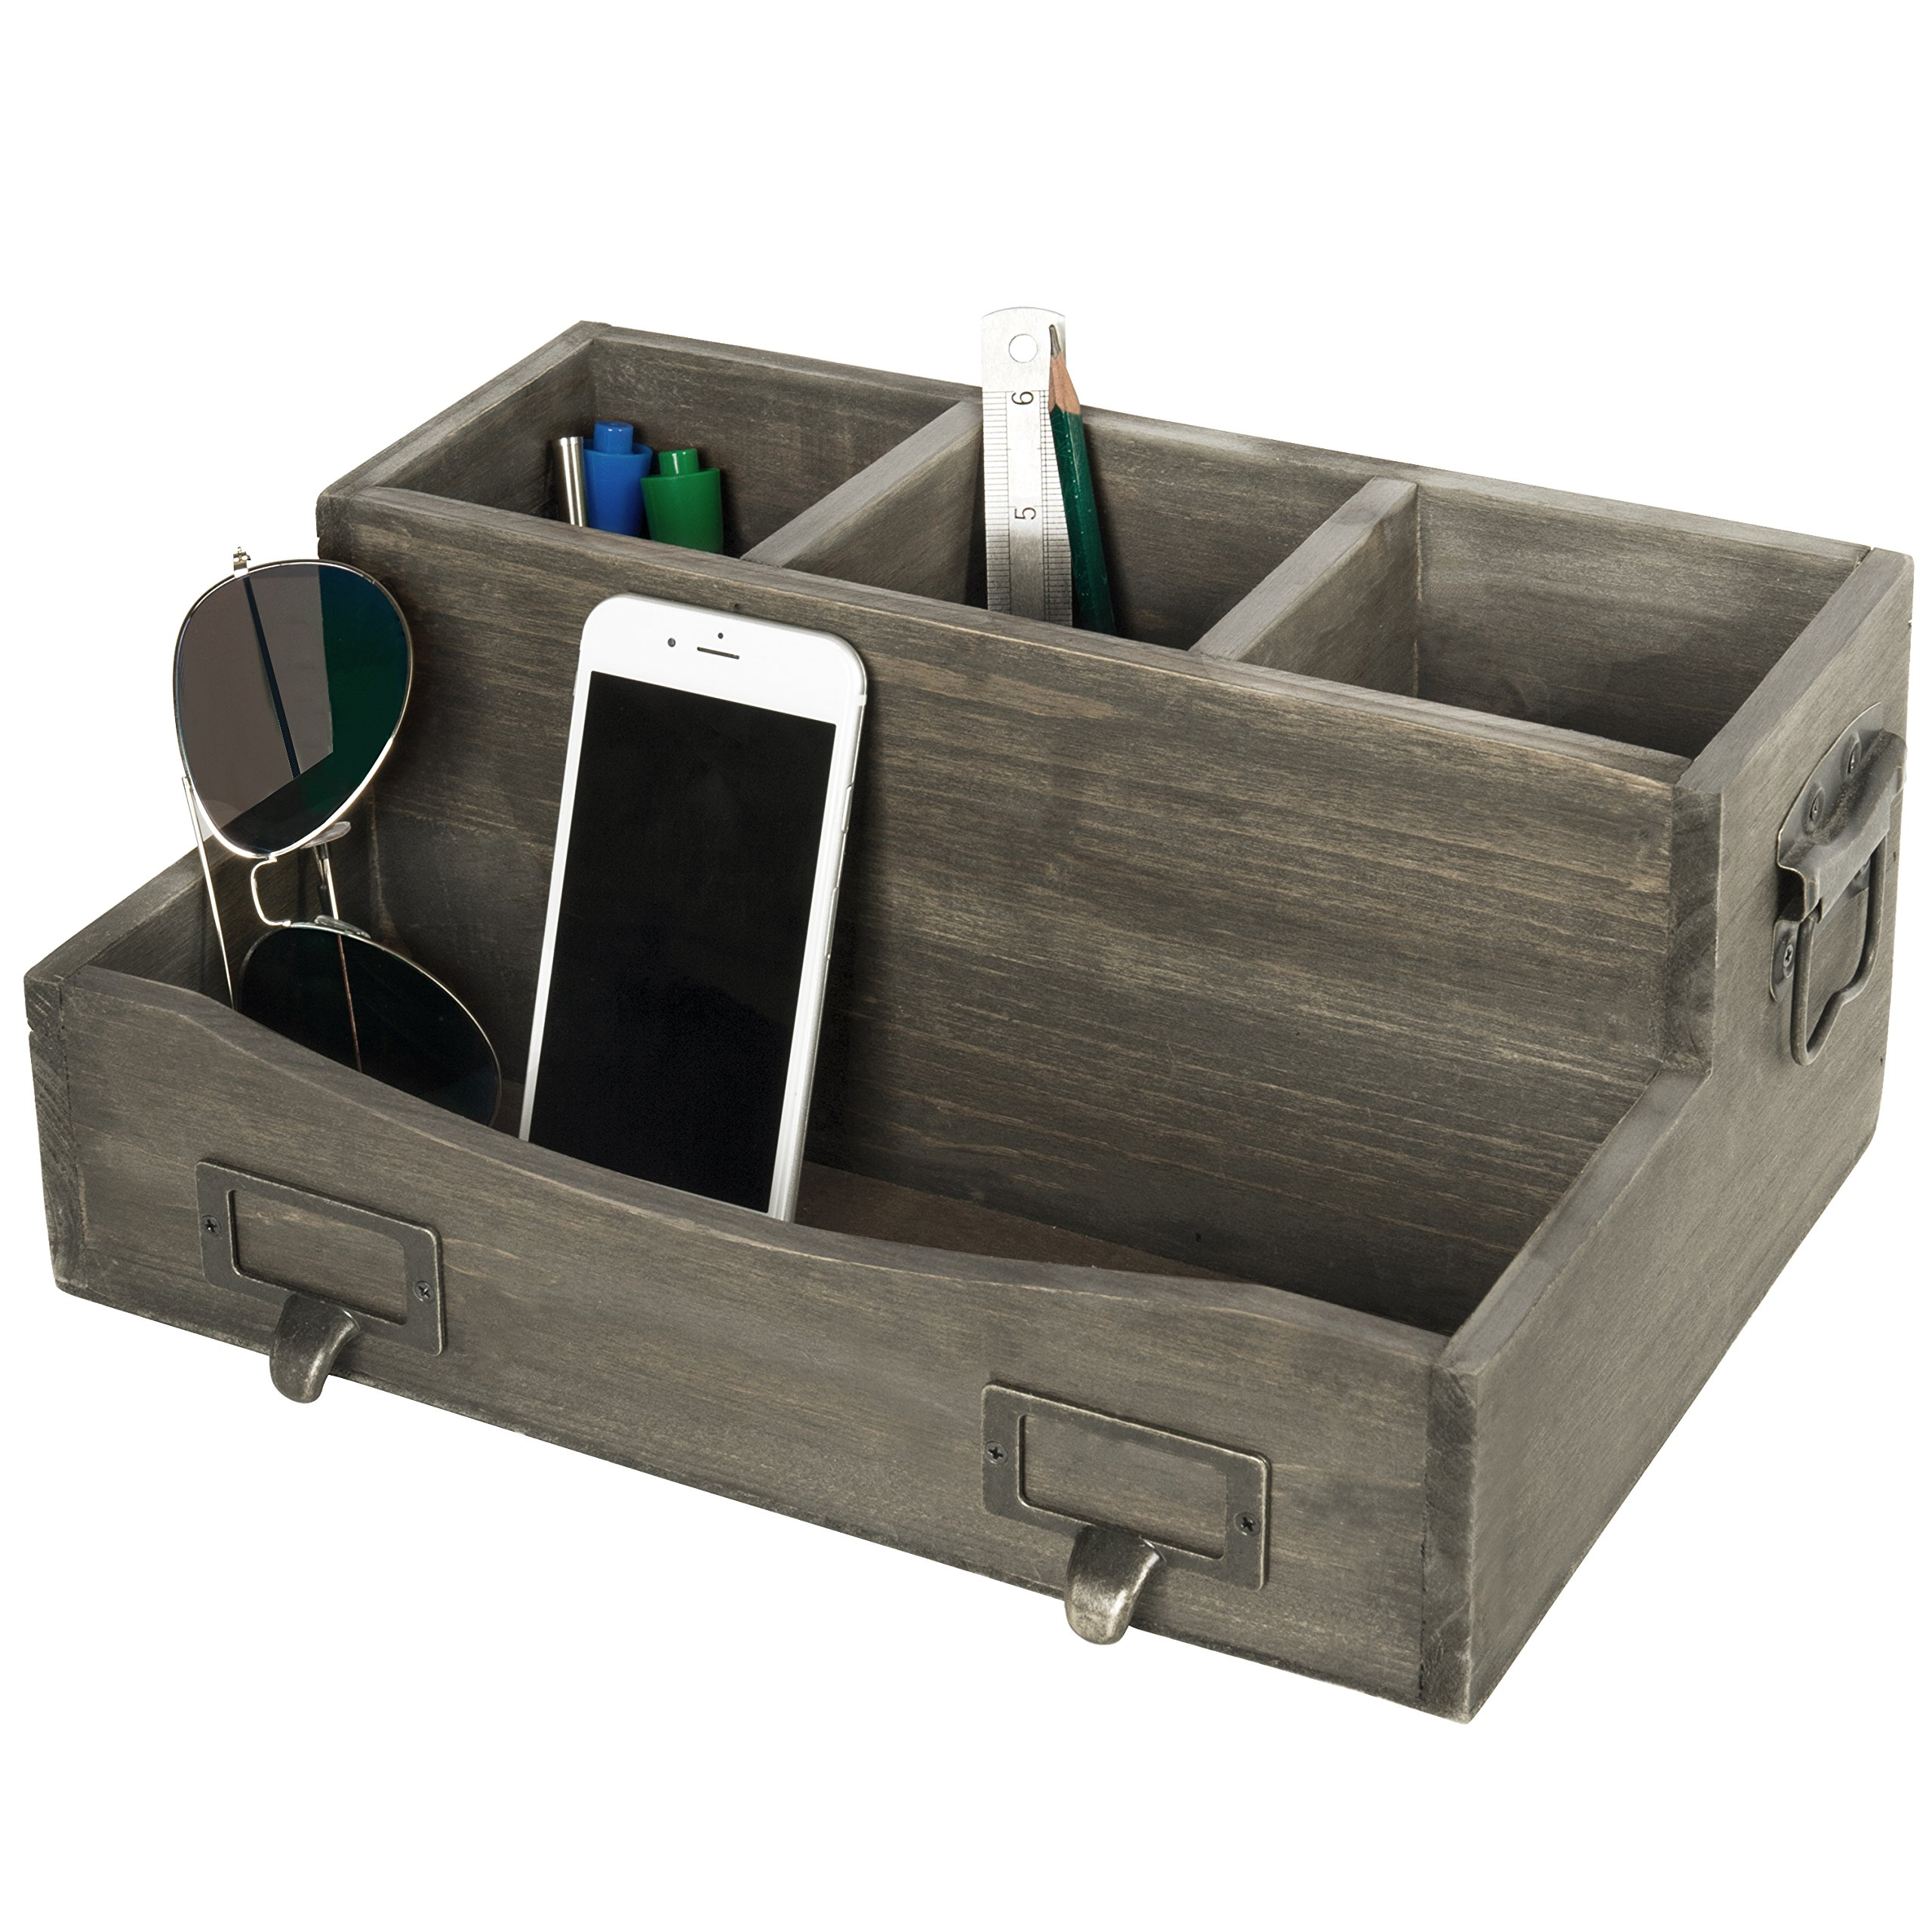 Barnwood Brown Desktop Magazine & Office Supplies Organizer with Metal Drawer-Pull Labels & Side Handles by MyGift (Image #1)